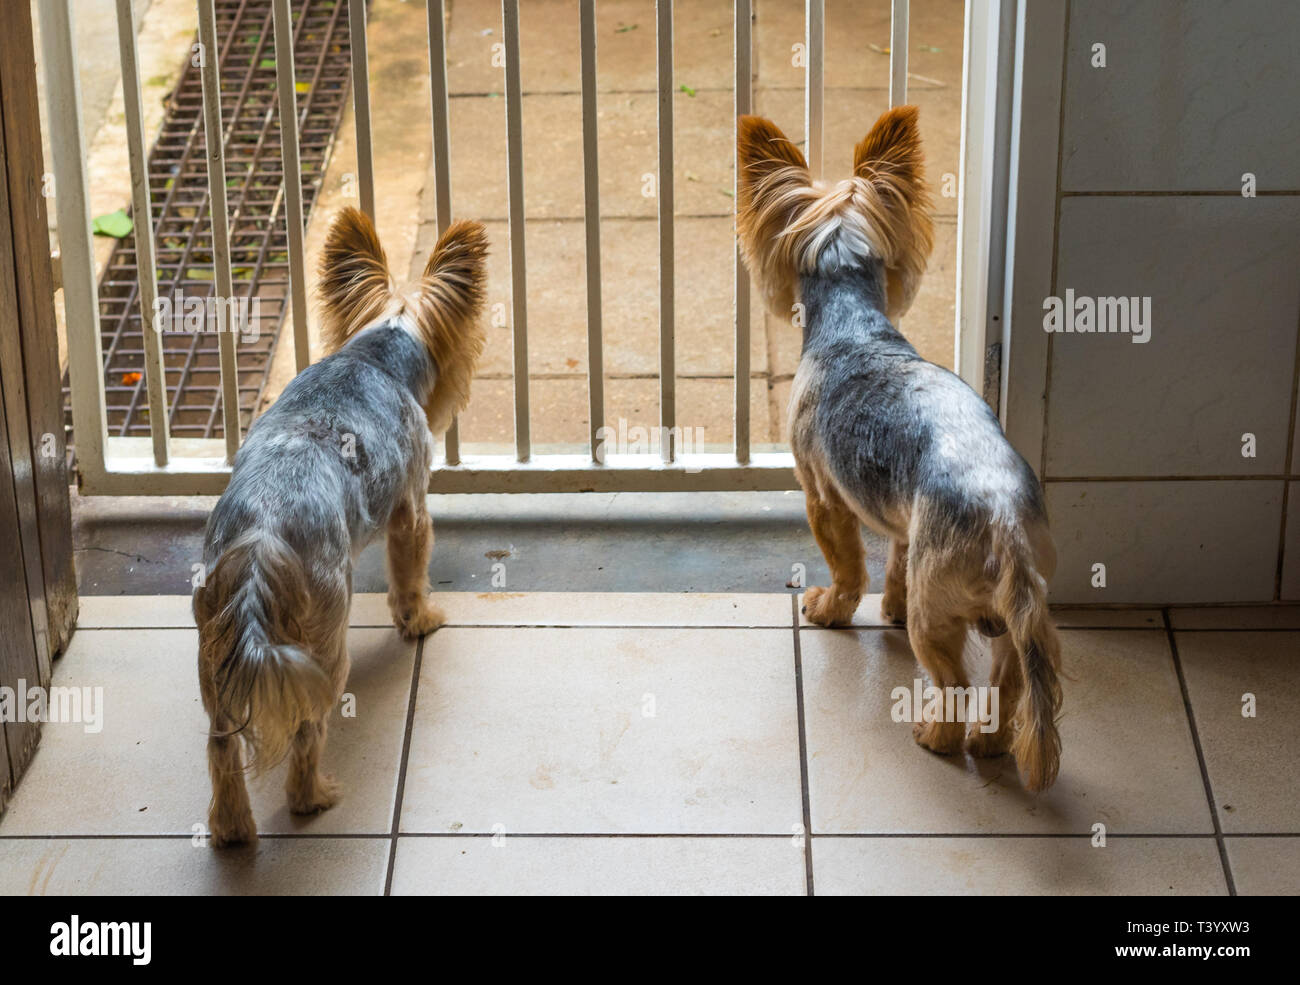 Pet dogs in a dilemma - can not get through a gate to play outside image with copy space - Stock Image